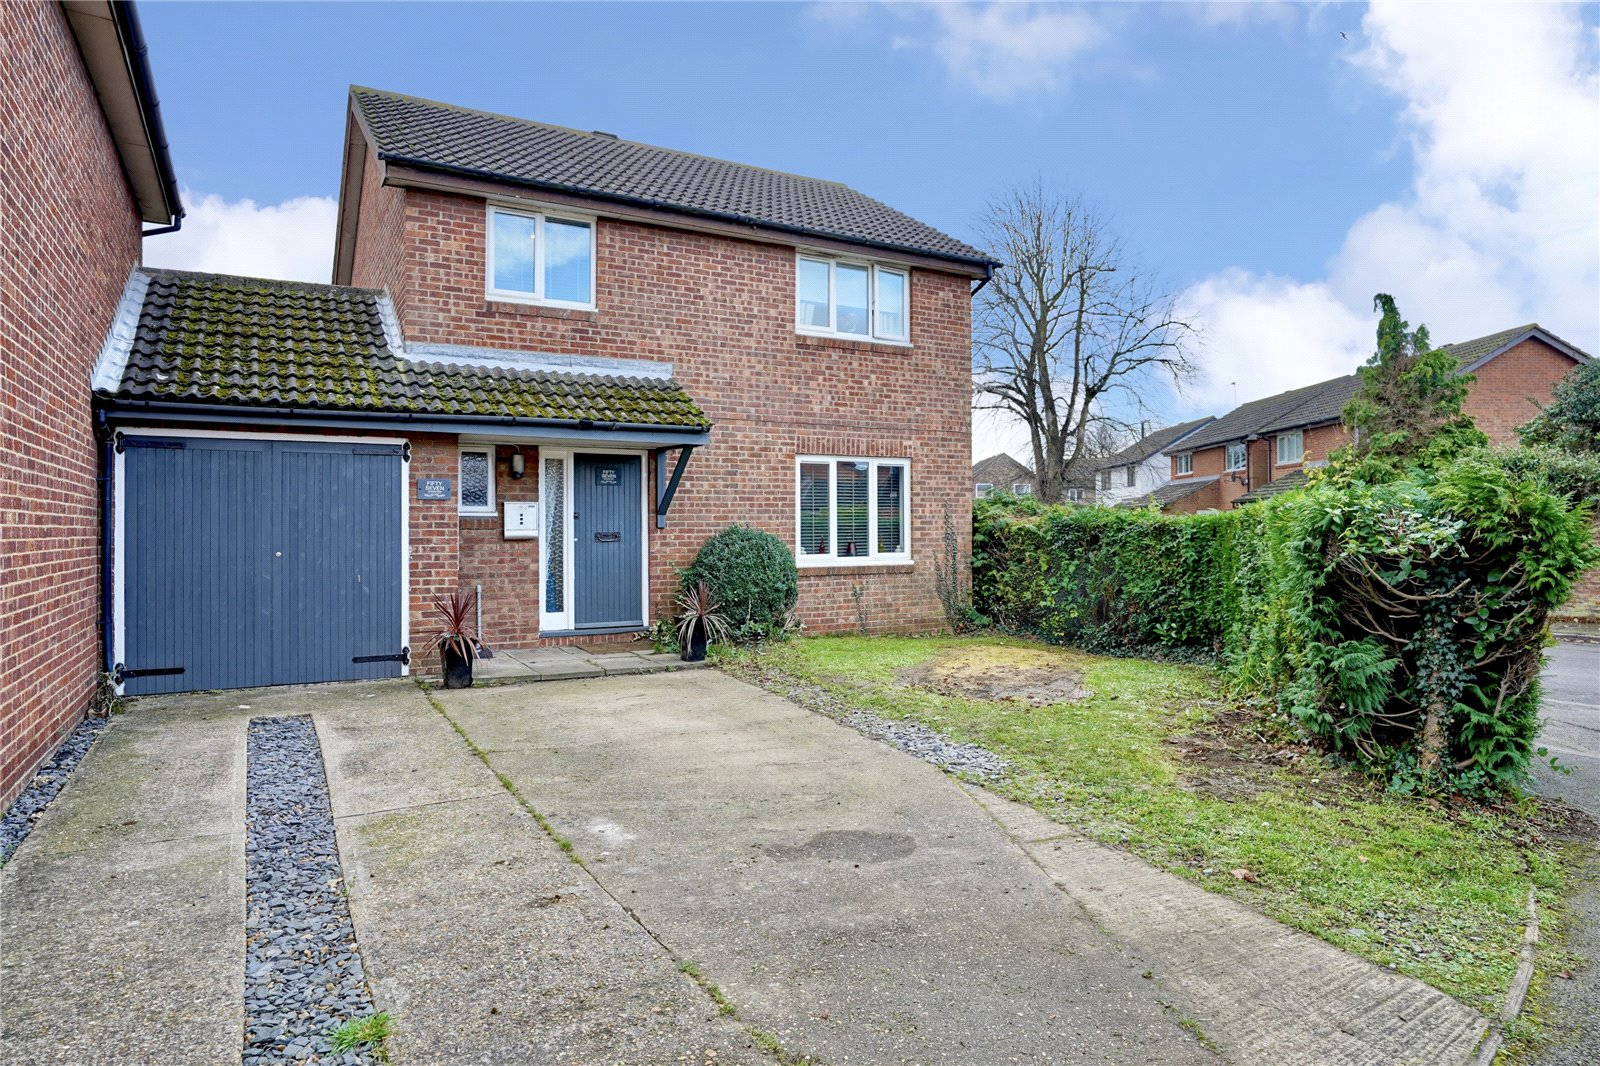 4 bed house for sale in Somersham, PE28 3JT - Property Image 1